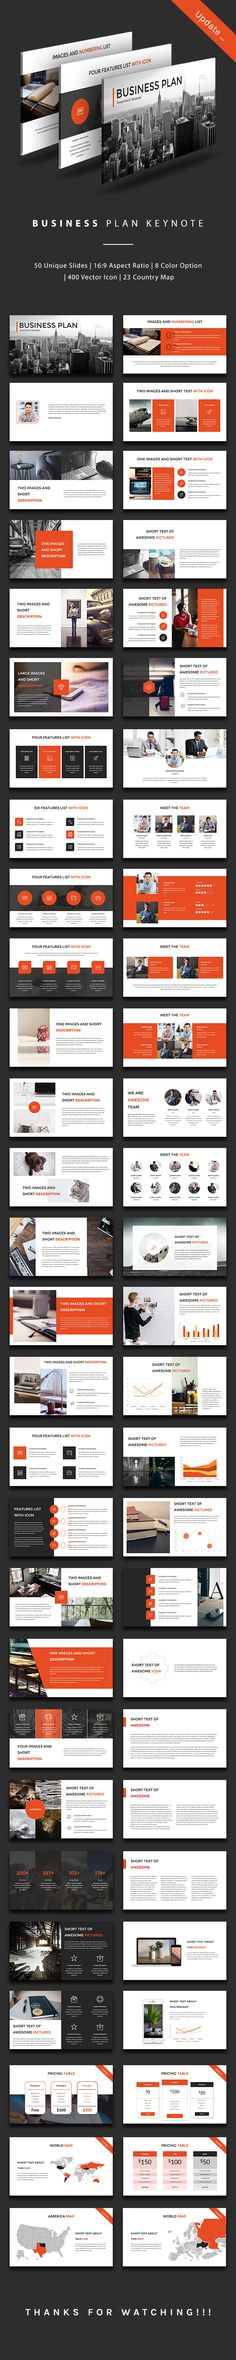 Business Plan Keynote Design Template - Business Keynote Design Template. Download here: https://graphicriver.net/item/business-plan-keynote/19398313?ref=yinkira